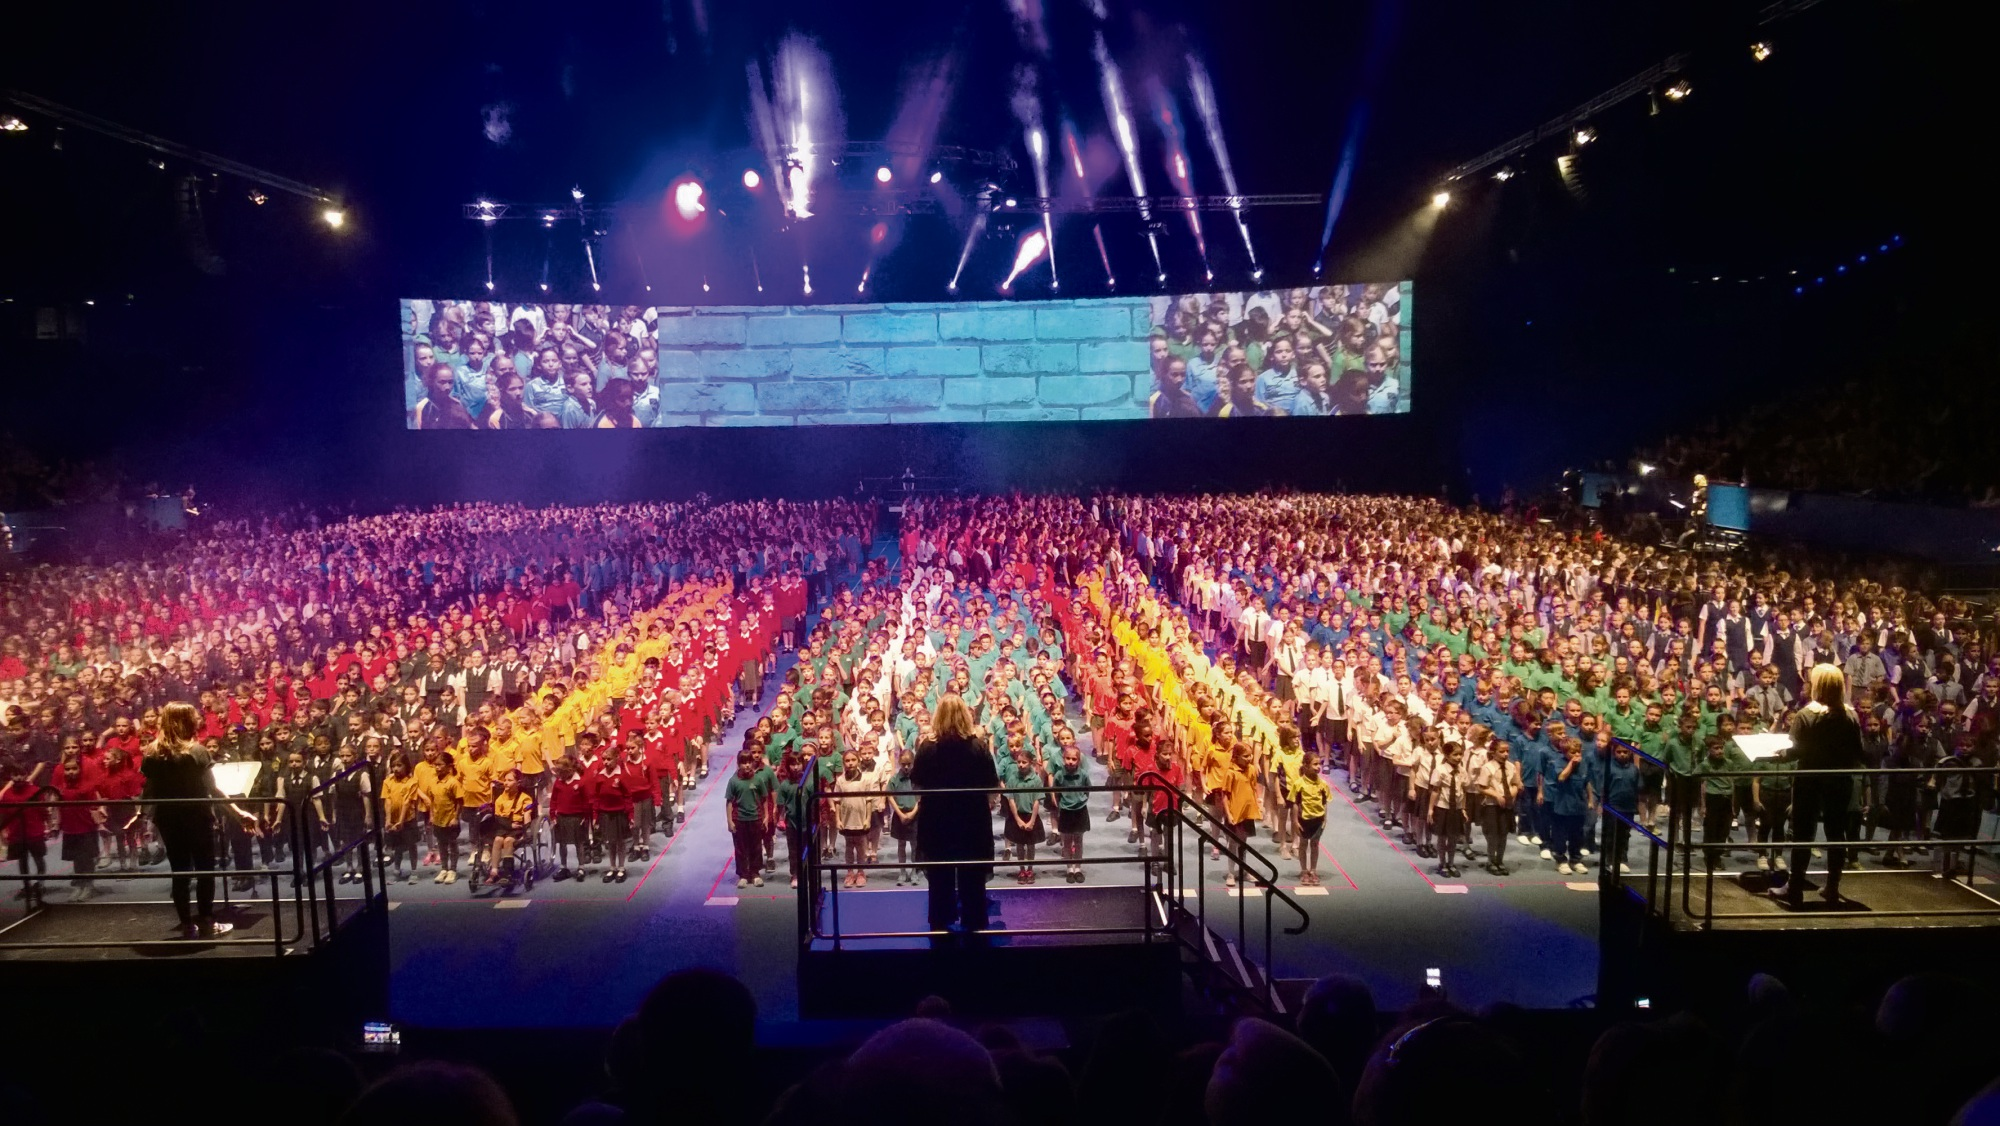 The 4000 strong One Big Voice children's choir perform at Perth Arena.